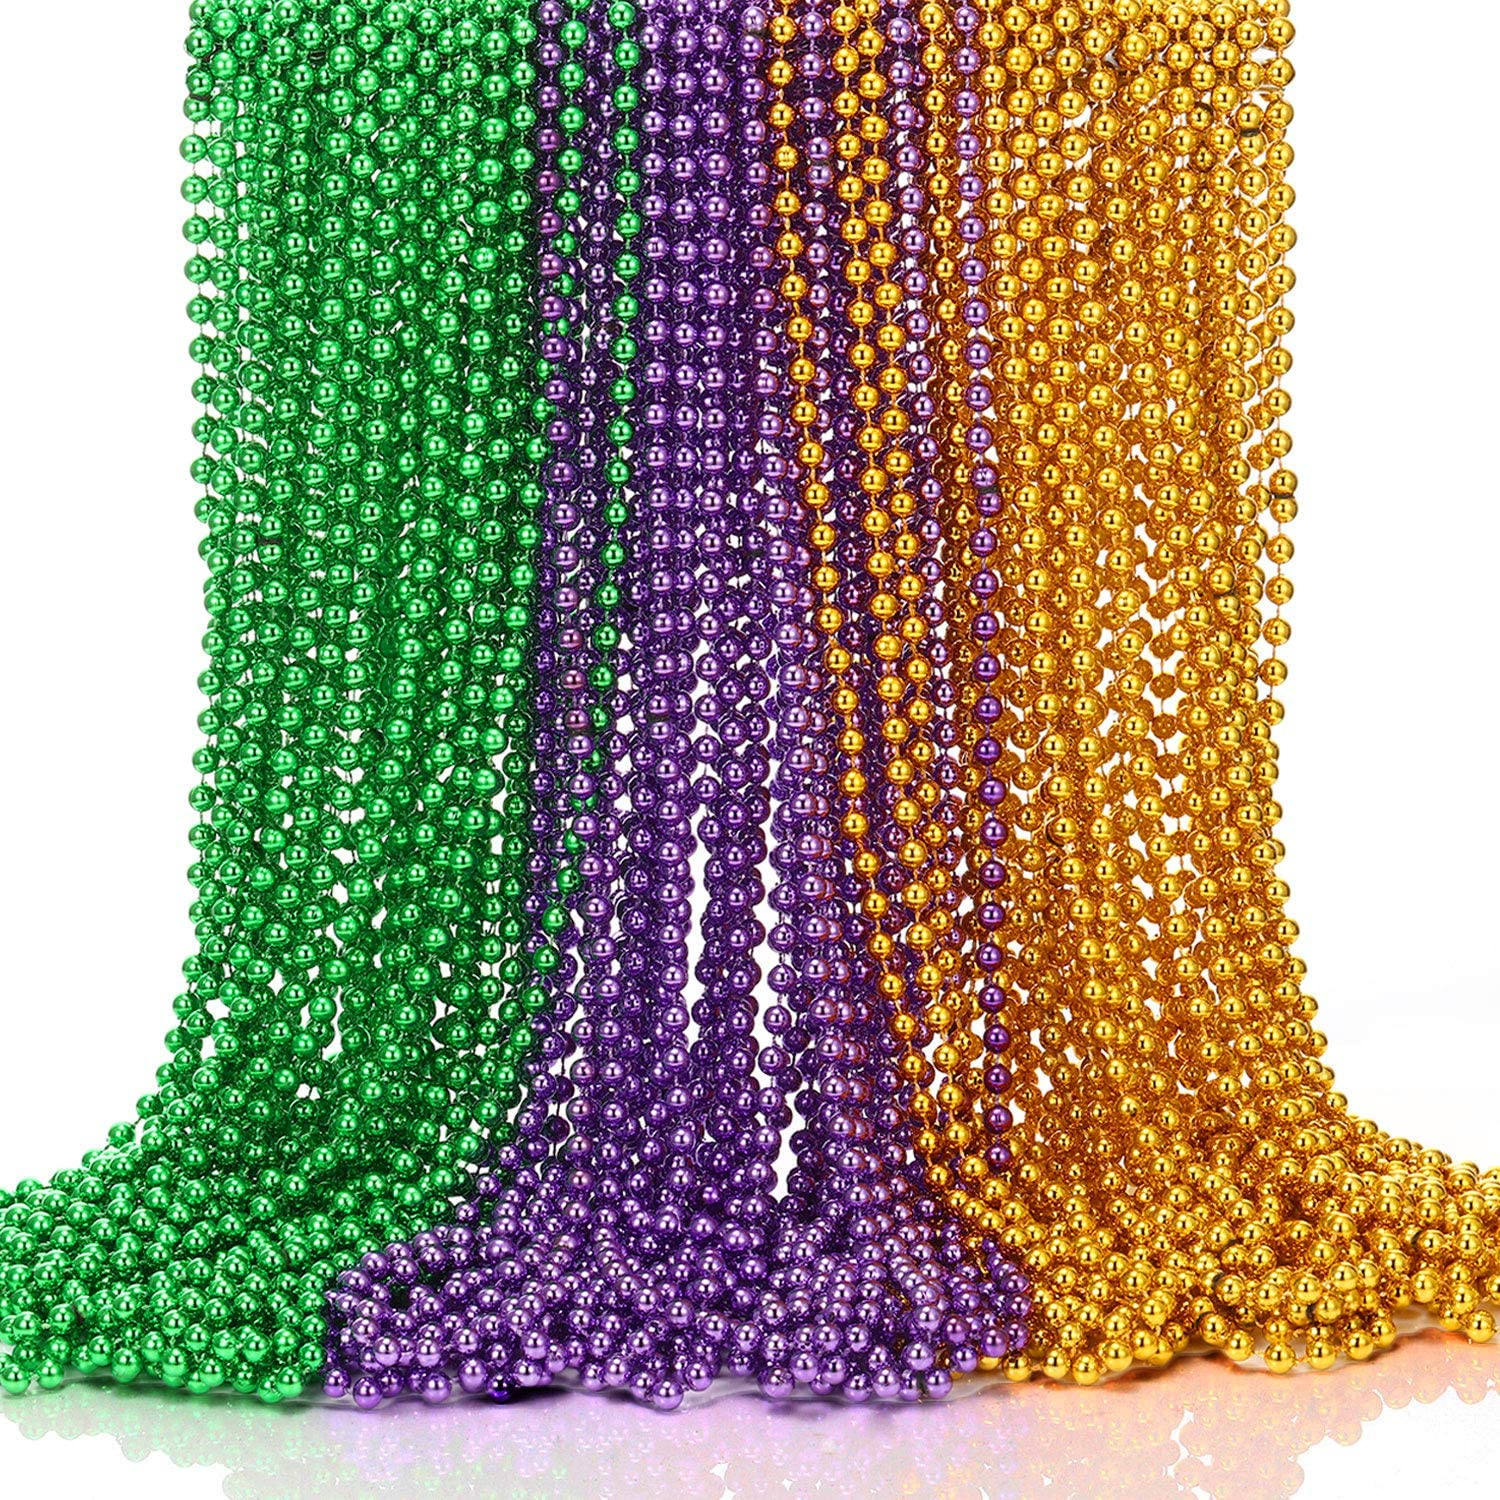 WILLBOND Mardi Gras Beads Round Bead Necklace Costume Necklace for Mardi Gras Themed Party Decor, 3 Colors, 32 Inch 7 mm (36 Pieces)